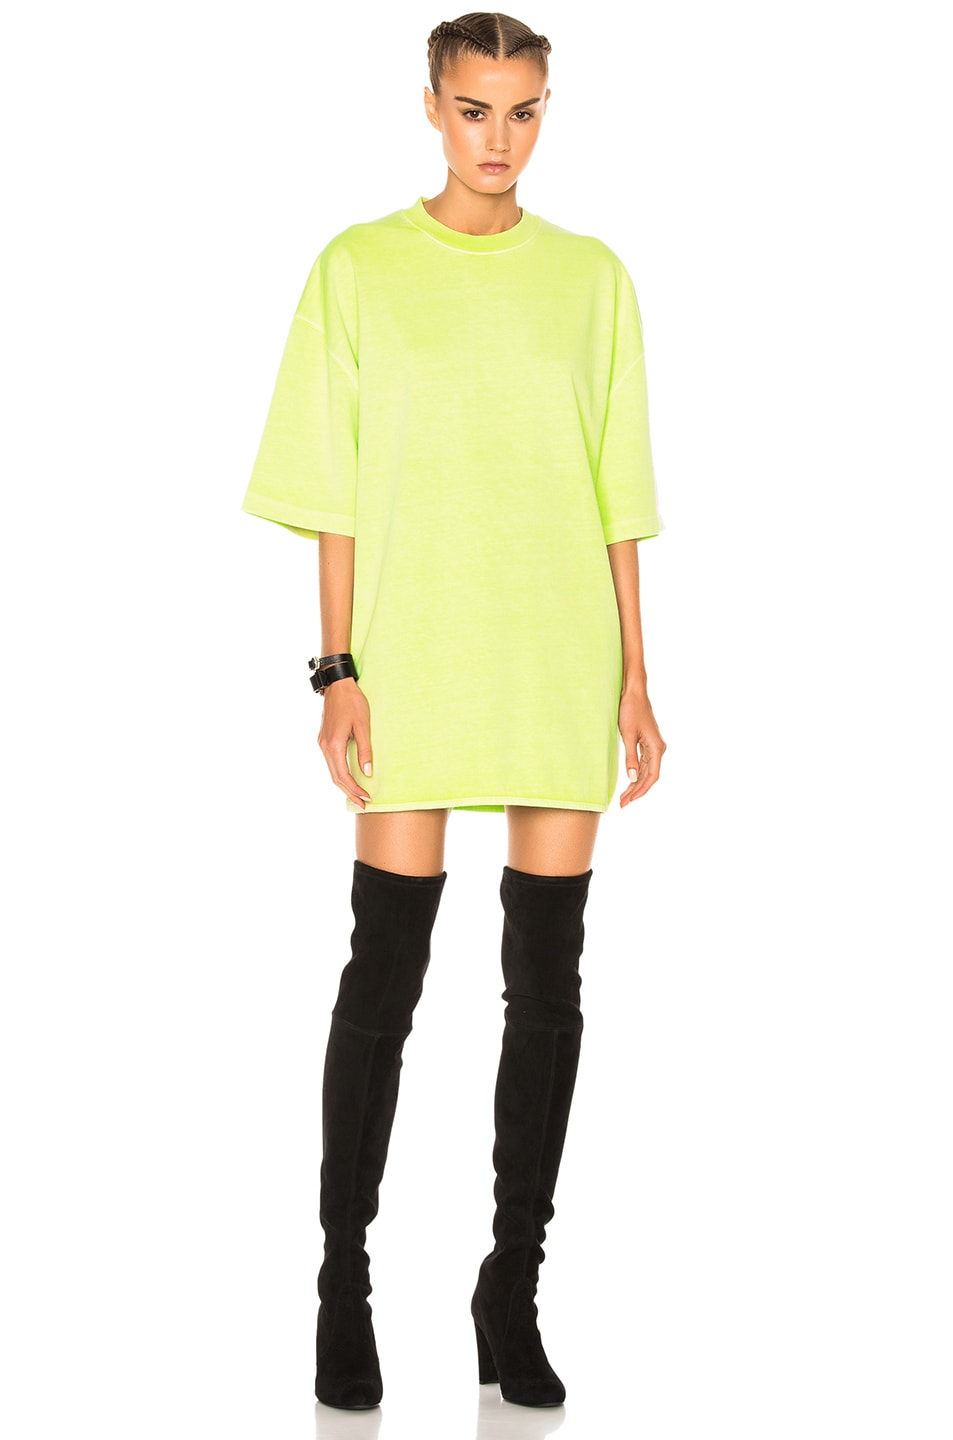 Image 1 of YEEZY Season 3 Heavy Knit Tee in Limelight